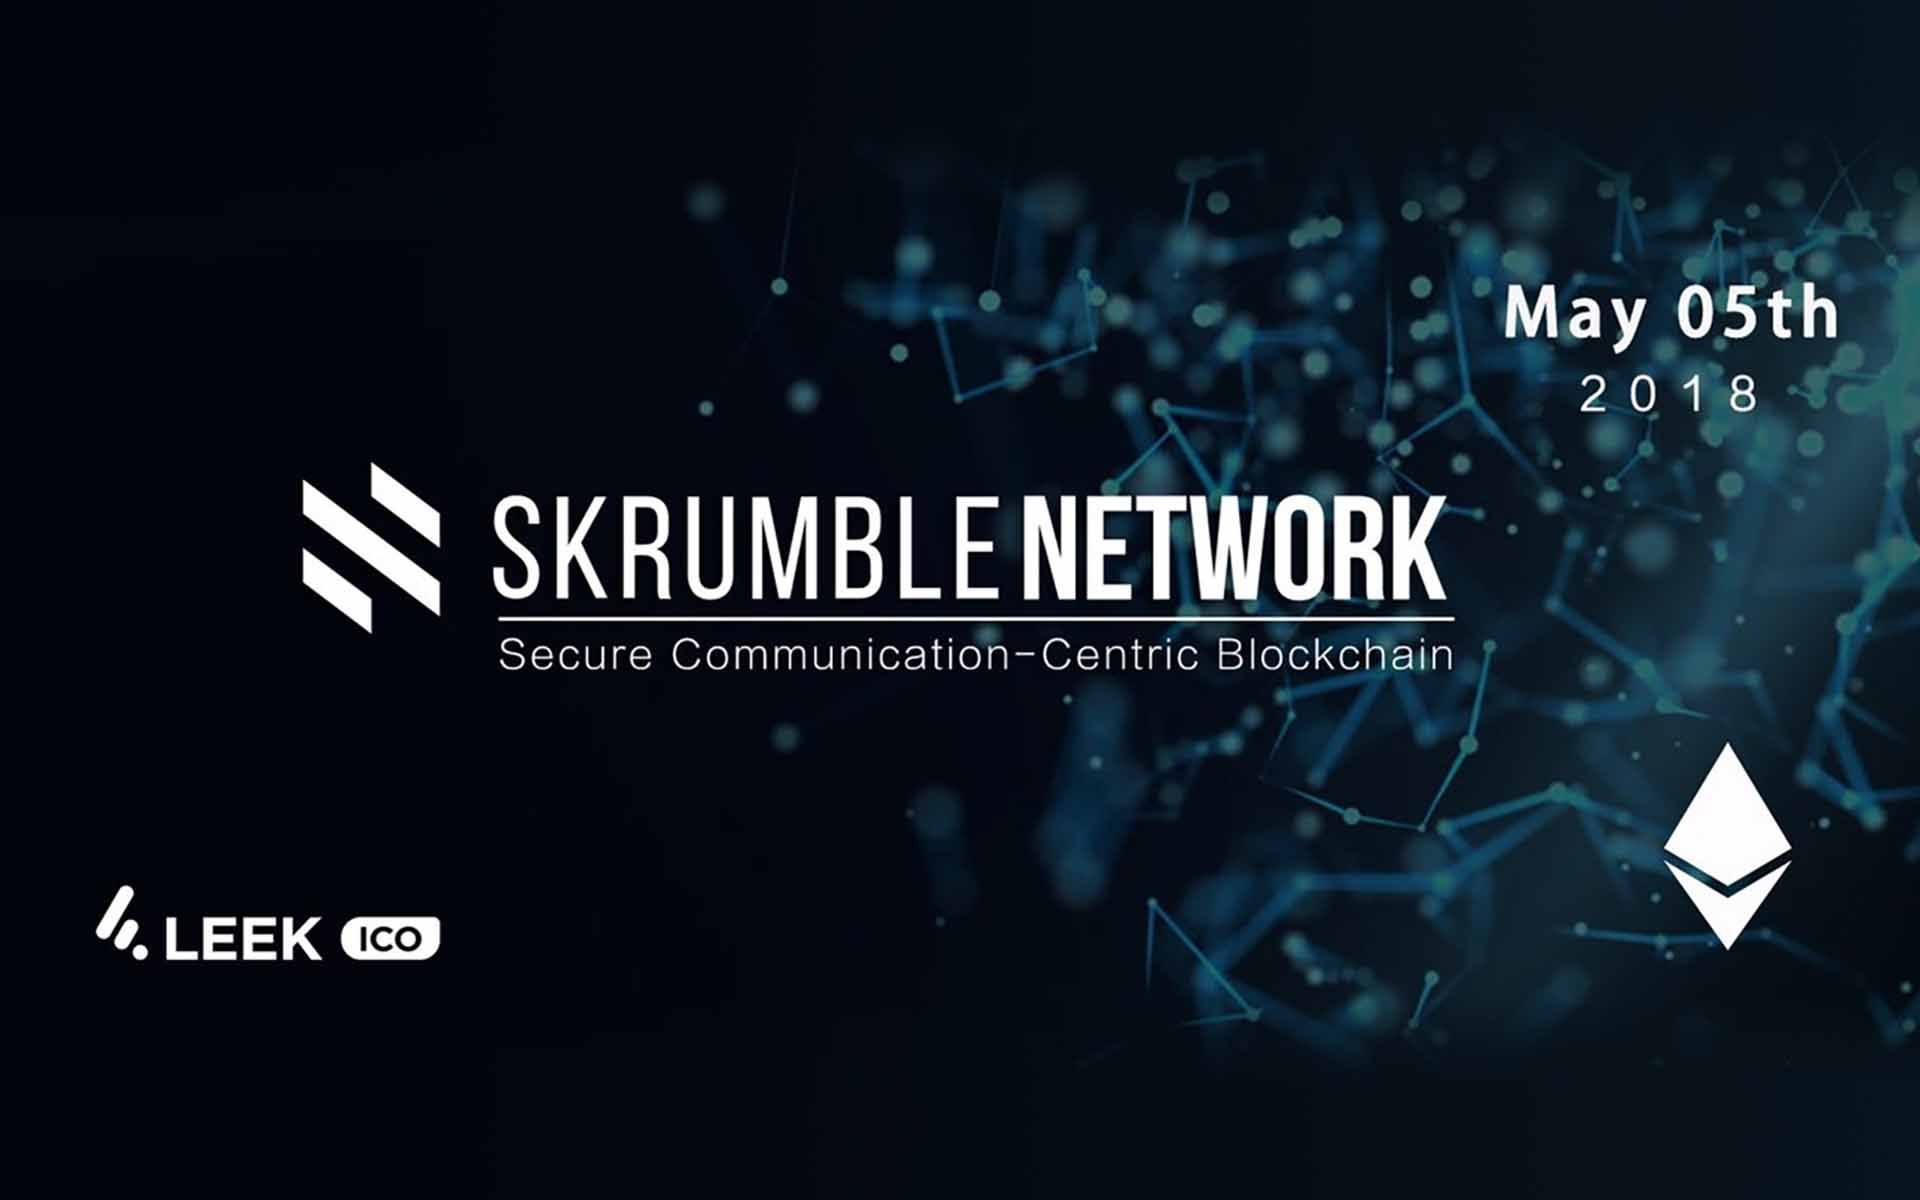 Skrumble Network Crowdfunding Sells Out in 1 Hour With the Help of LEEKICO and Announces First Exchange Listing